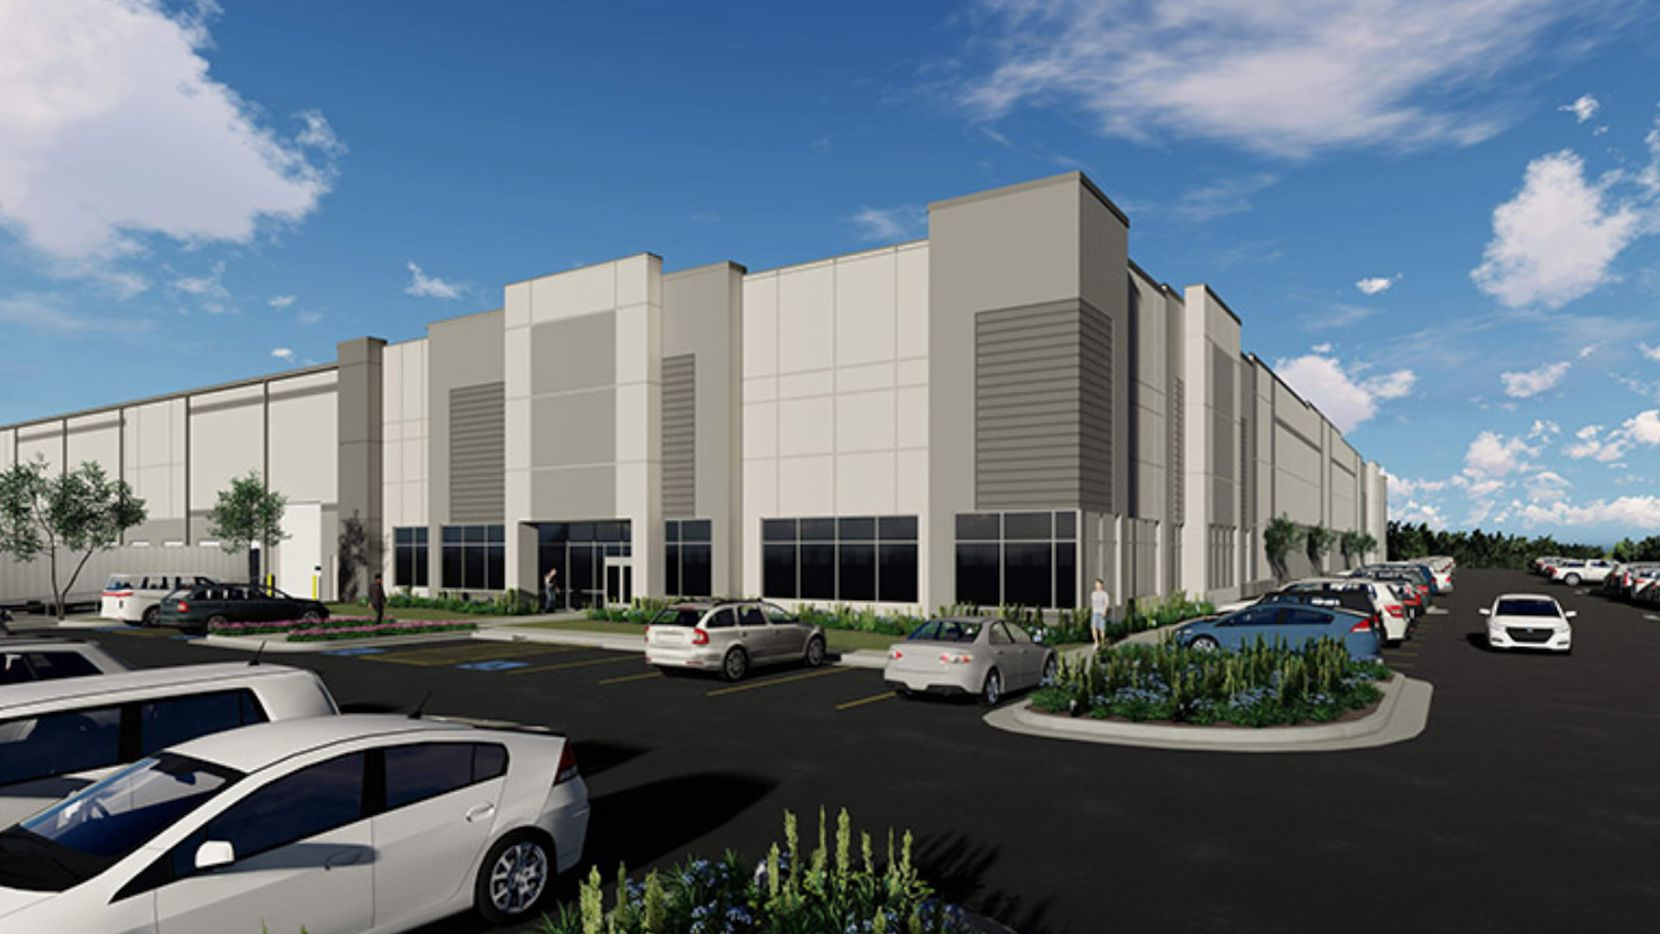 Dalfen Industrial's warehouse project is near I-635.